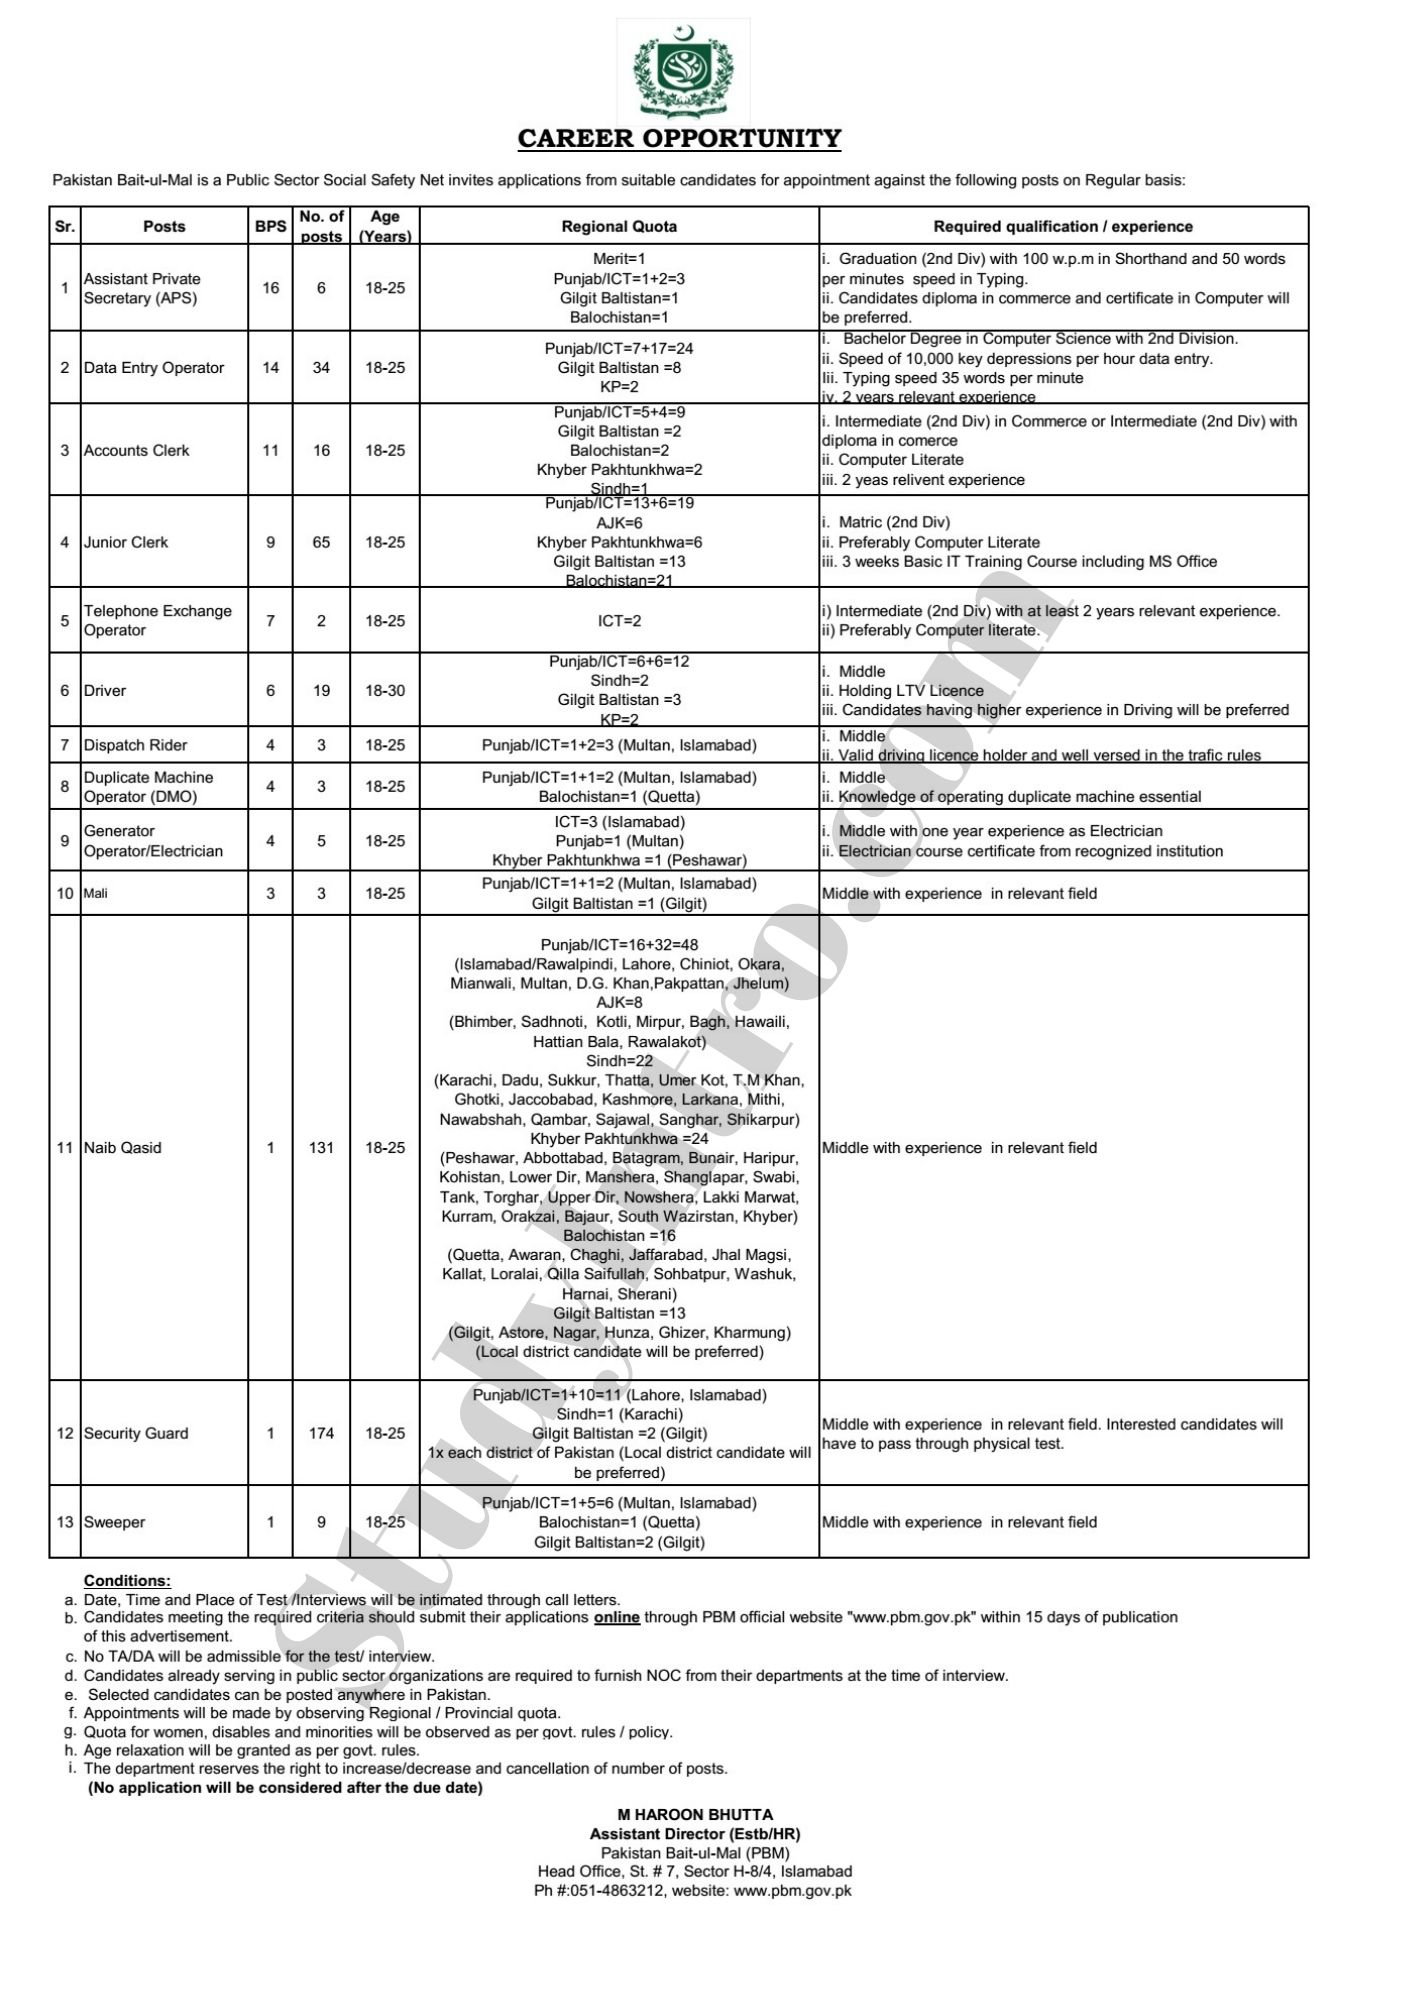 Government Jobs in Pakistan Bait-ul-Mal-2021-Apply Now